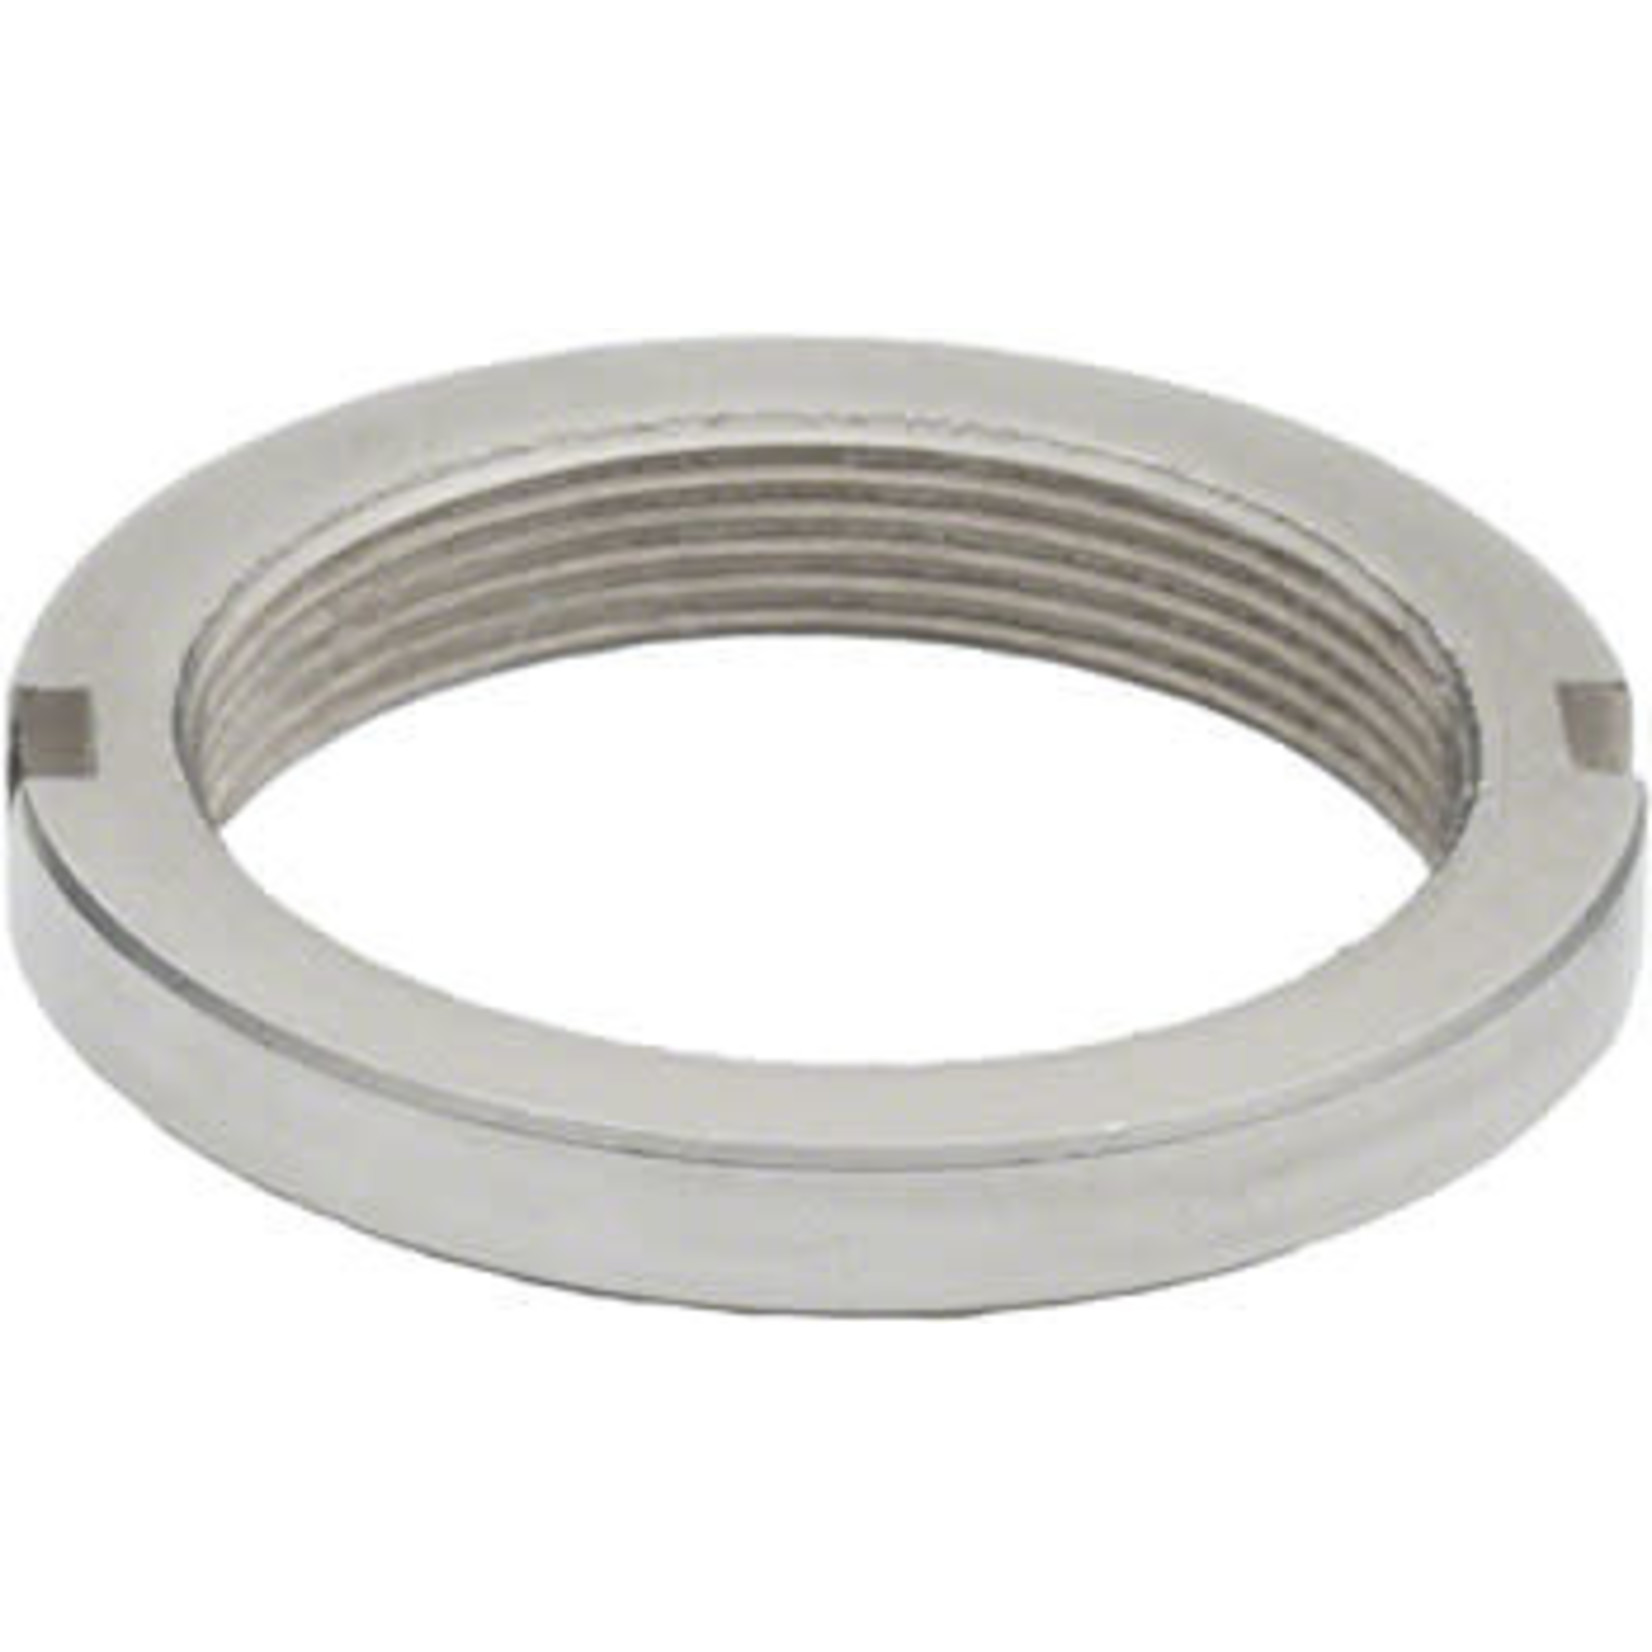 """Surly Surly Stainless Steel Track Cog Lockring 1.29"""" x 24 tpi Left-hand Thread"""